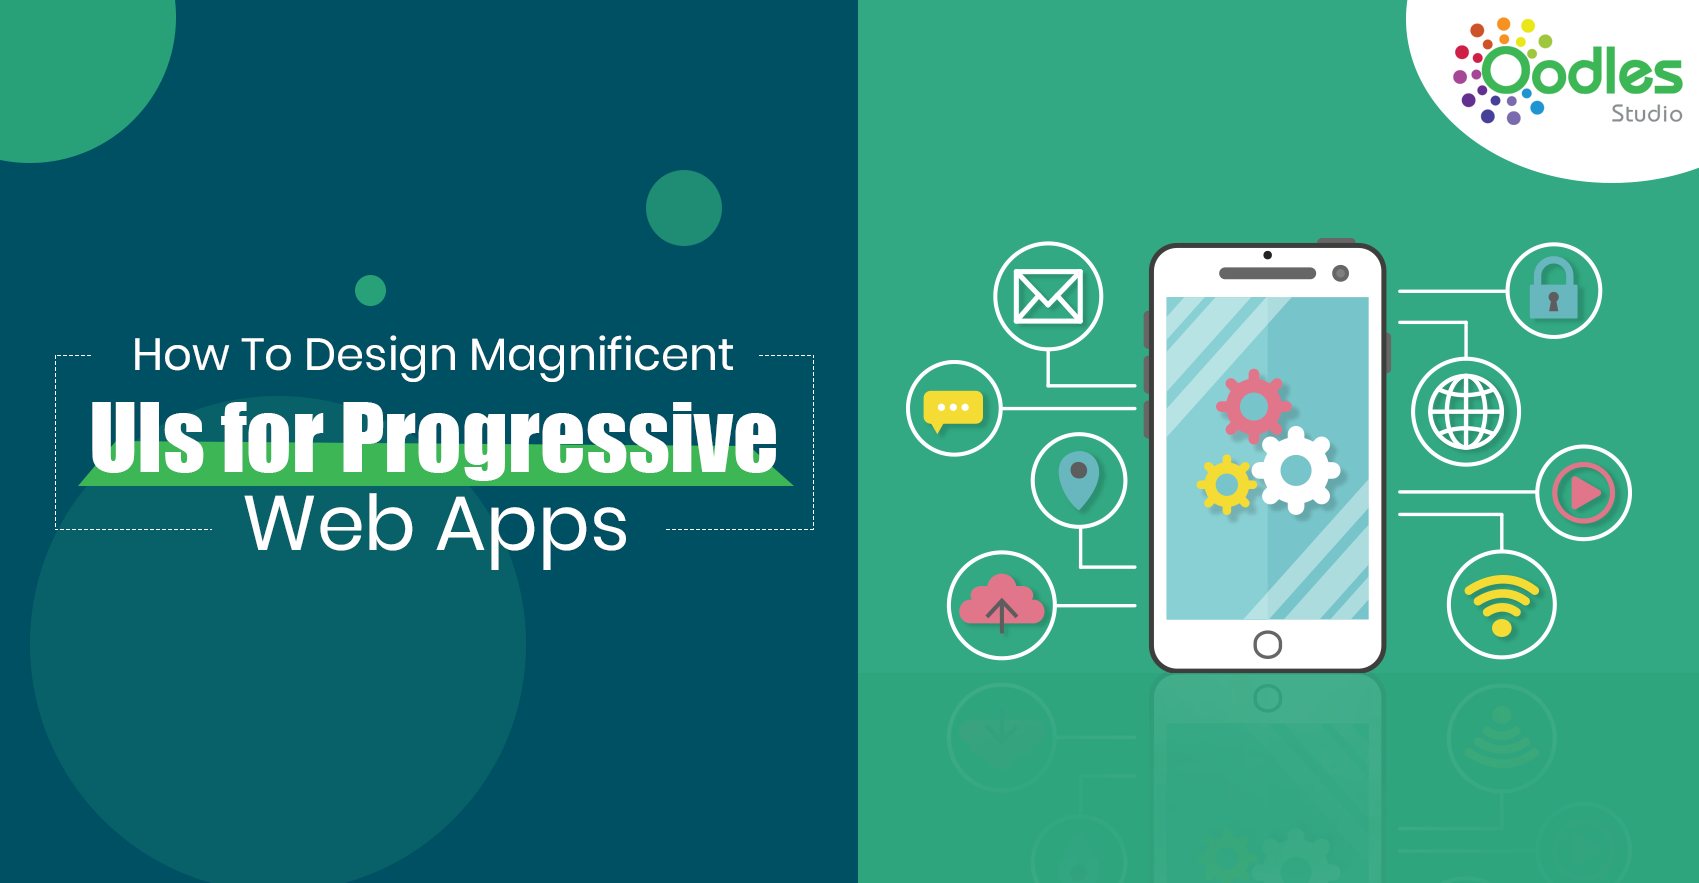 UIs for Progressive Web Apps